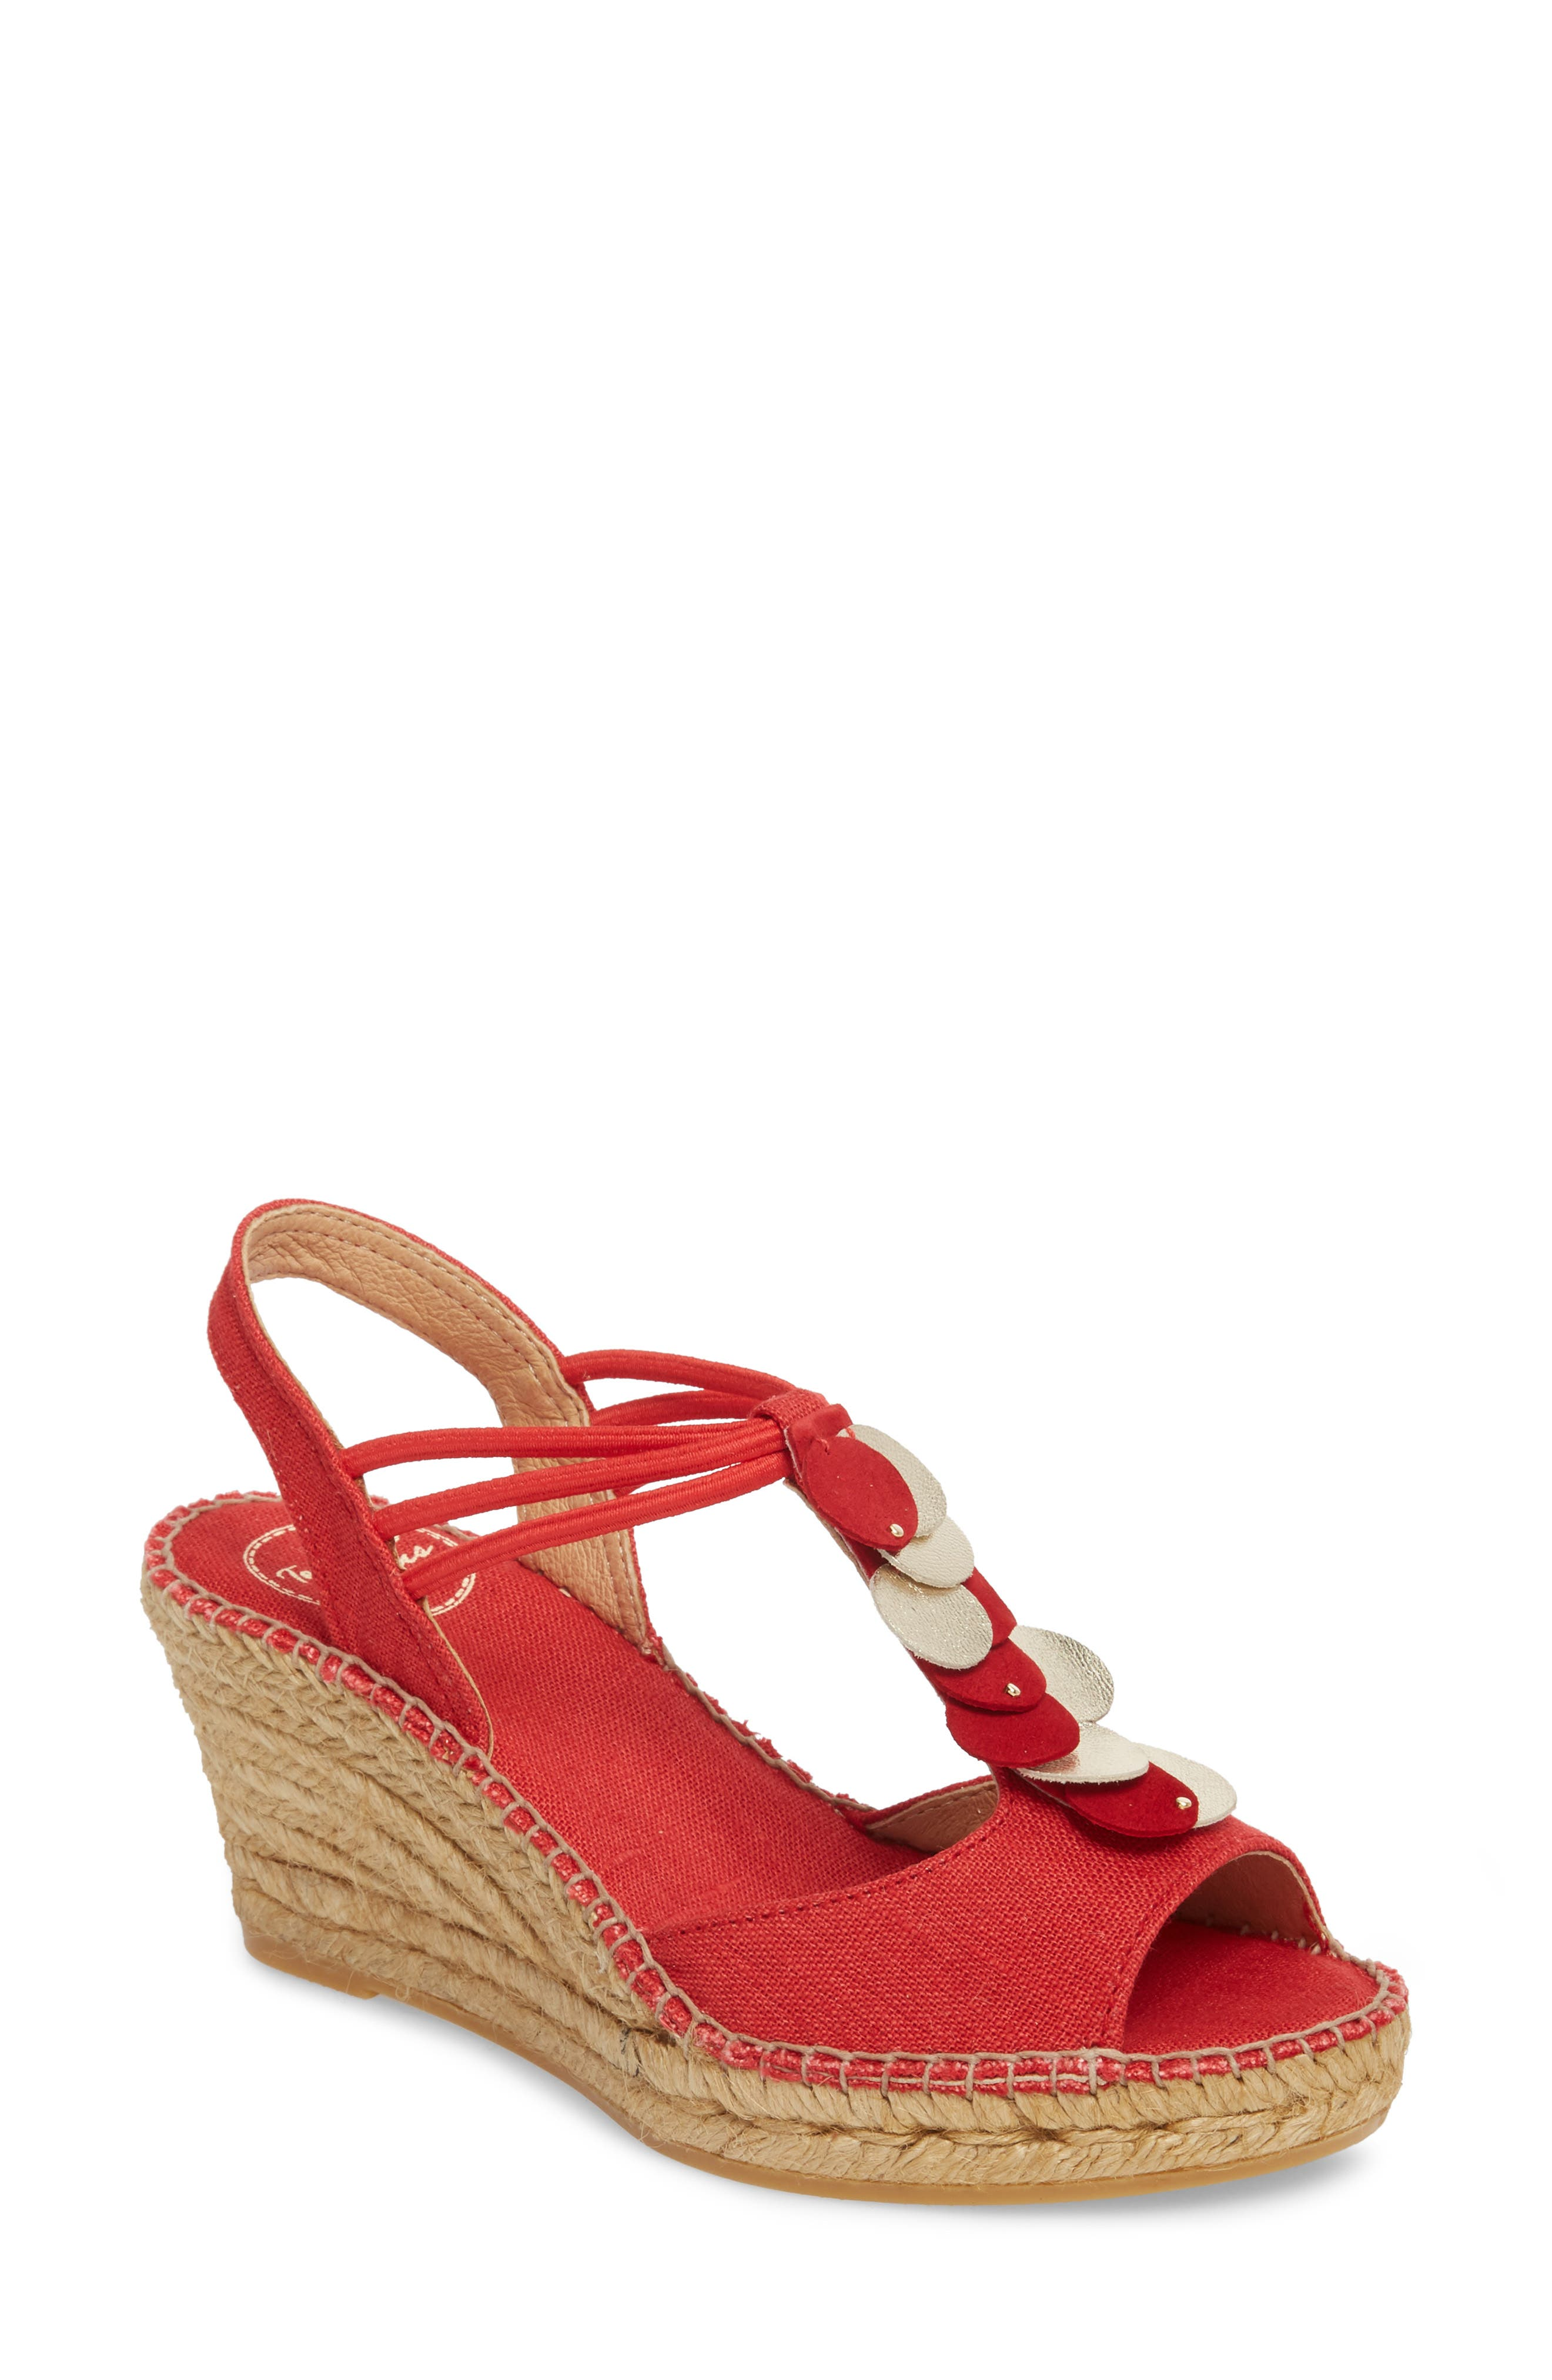 Sitges Espadrille Sandal,                             Main thumbnail 1, color,                             Red Fabric